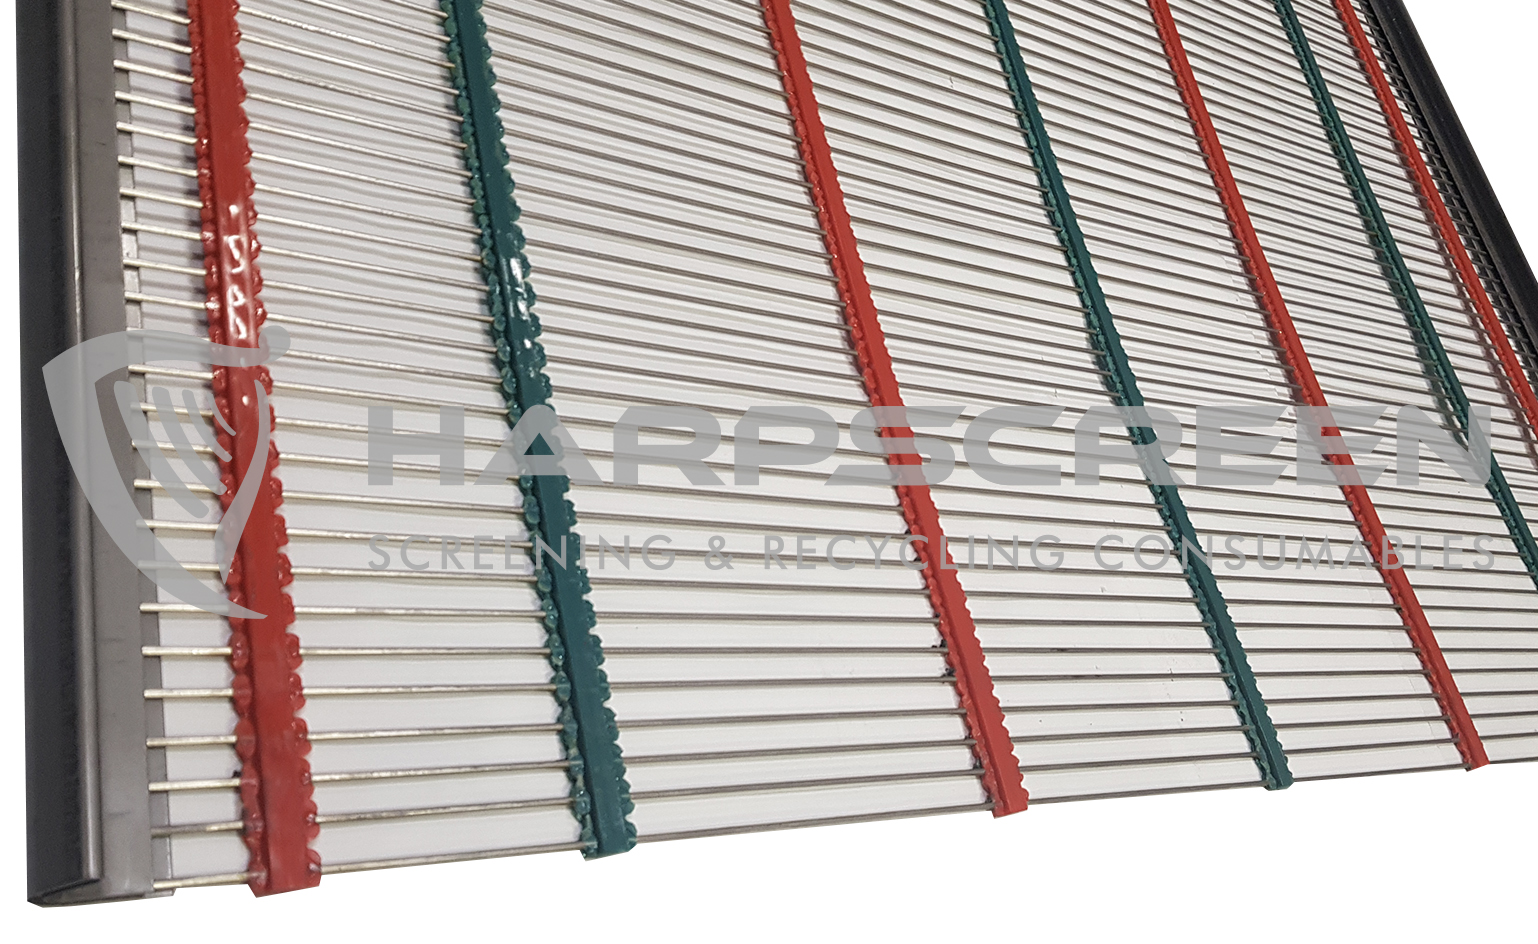 Self cleaning piano wire screens pu crossbands